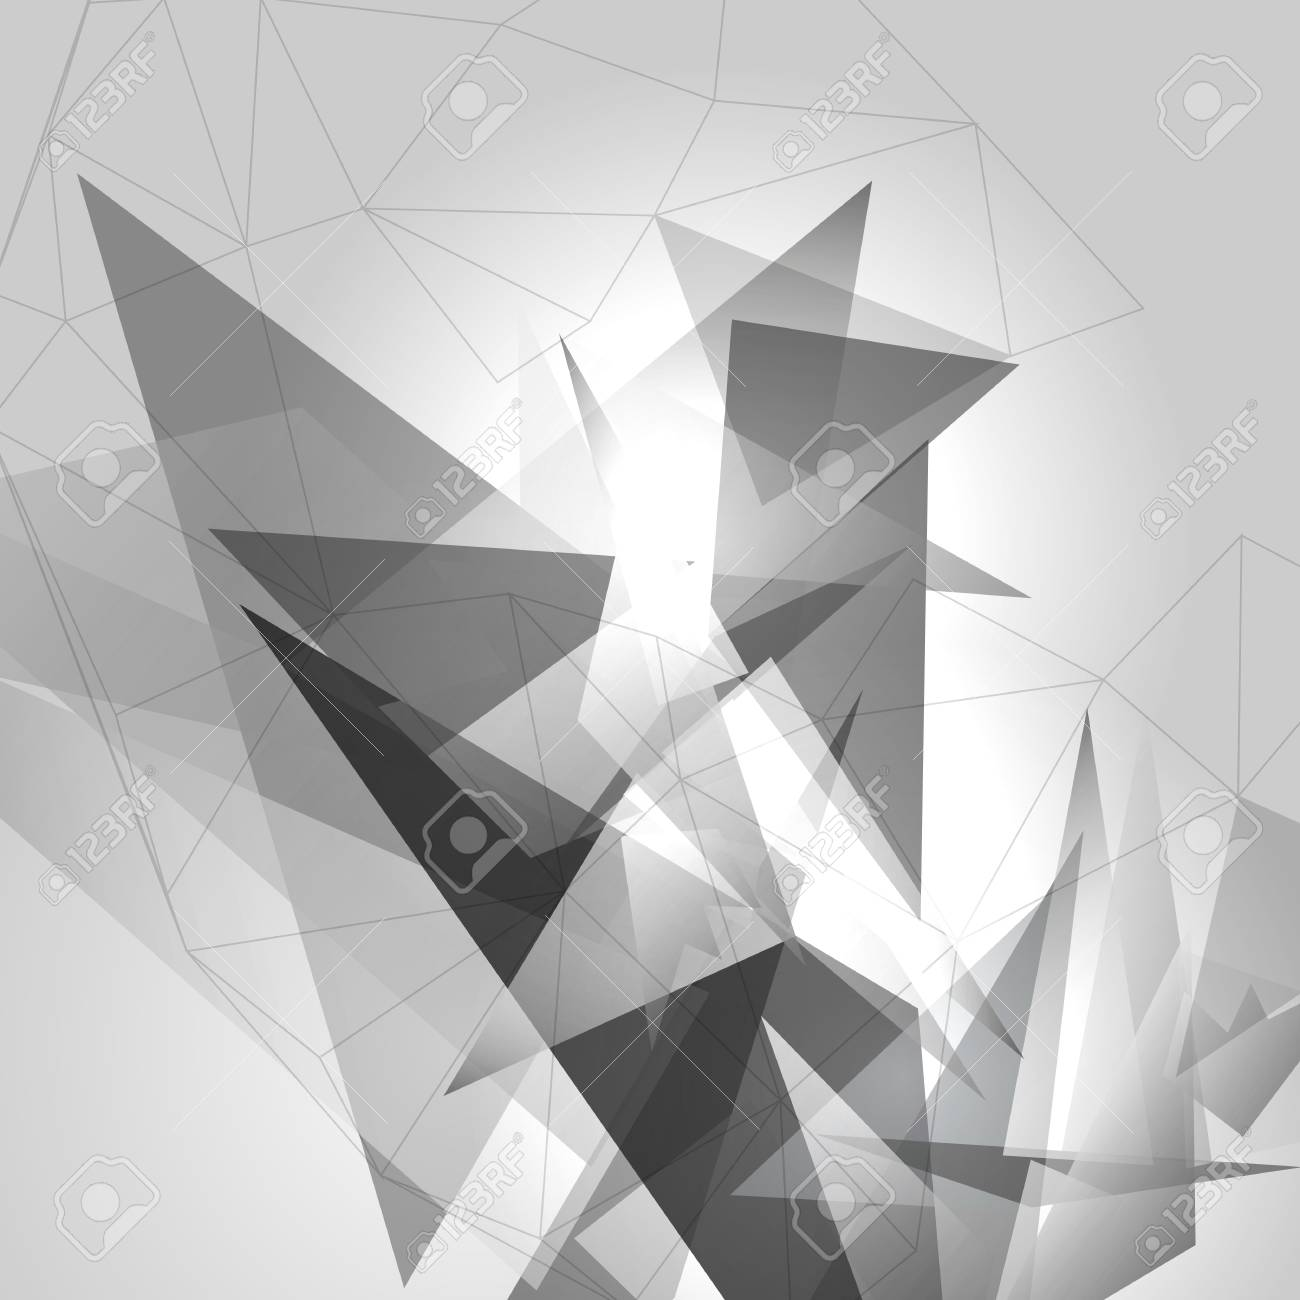 Black & White Background with Triangles - Vector Illustration - 99086920